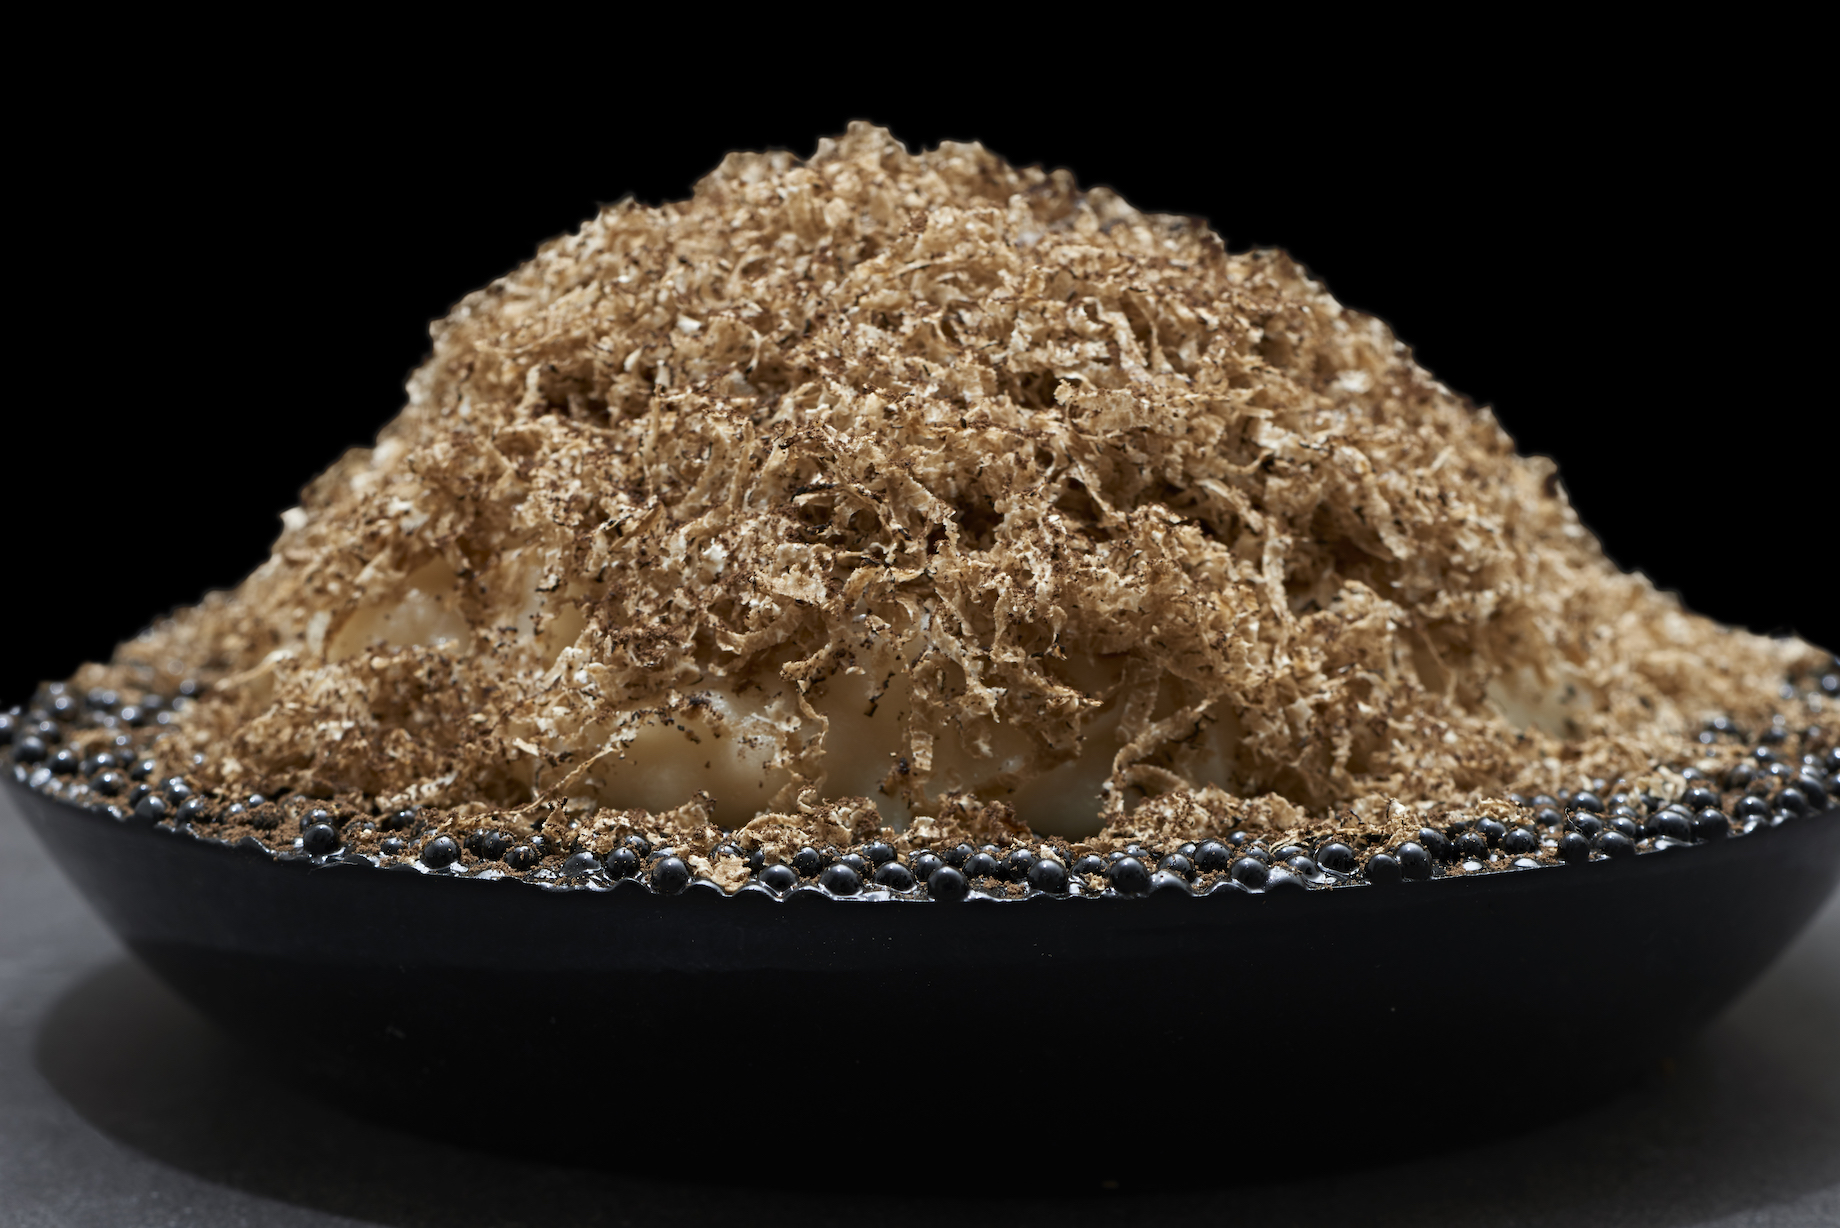 Salt baked celeriac porridge with truffle, truffle oil and black trumpet mushroom powder by Kristian Baumann of 108 Restaurant, photo by Rein Janssen